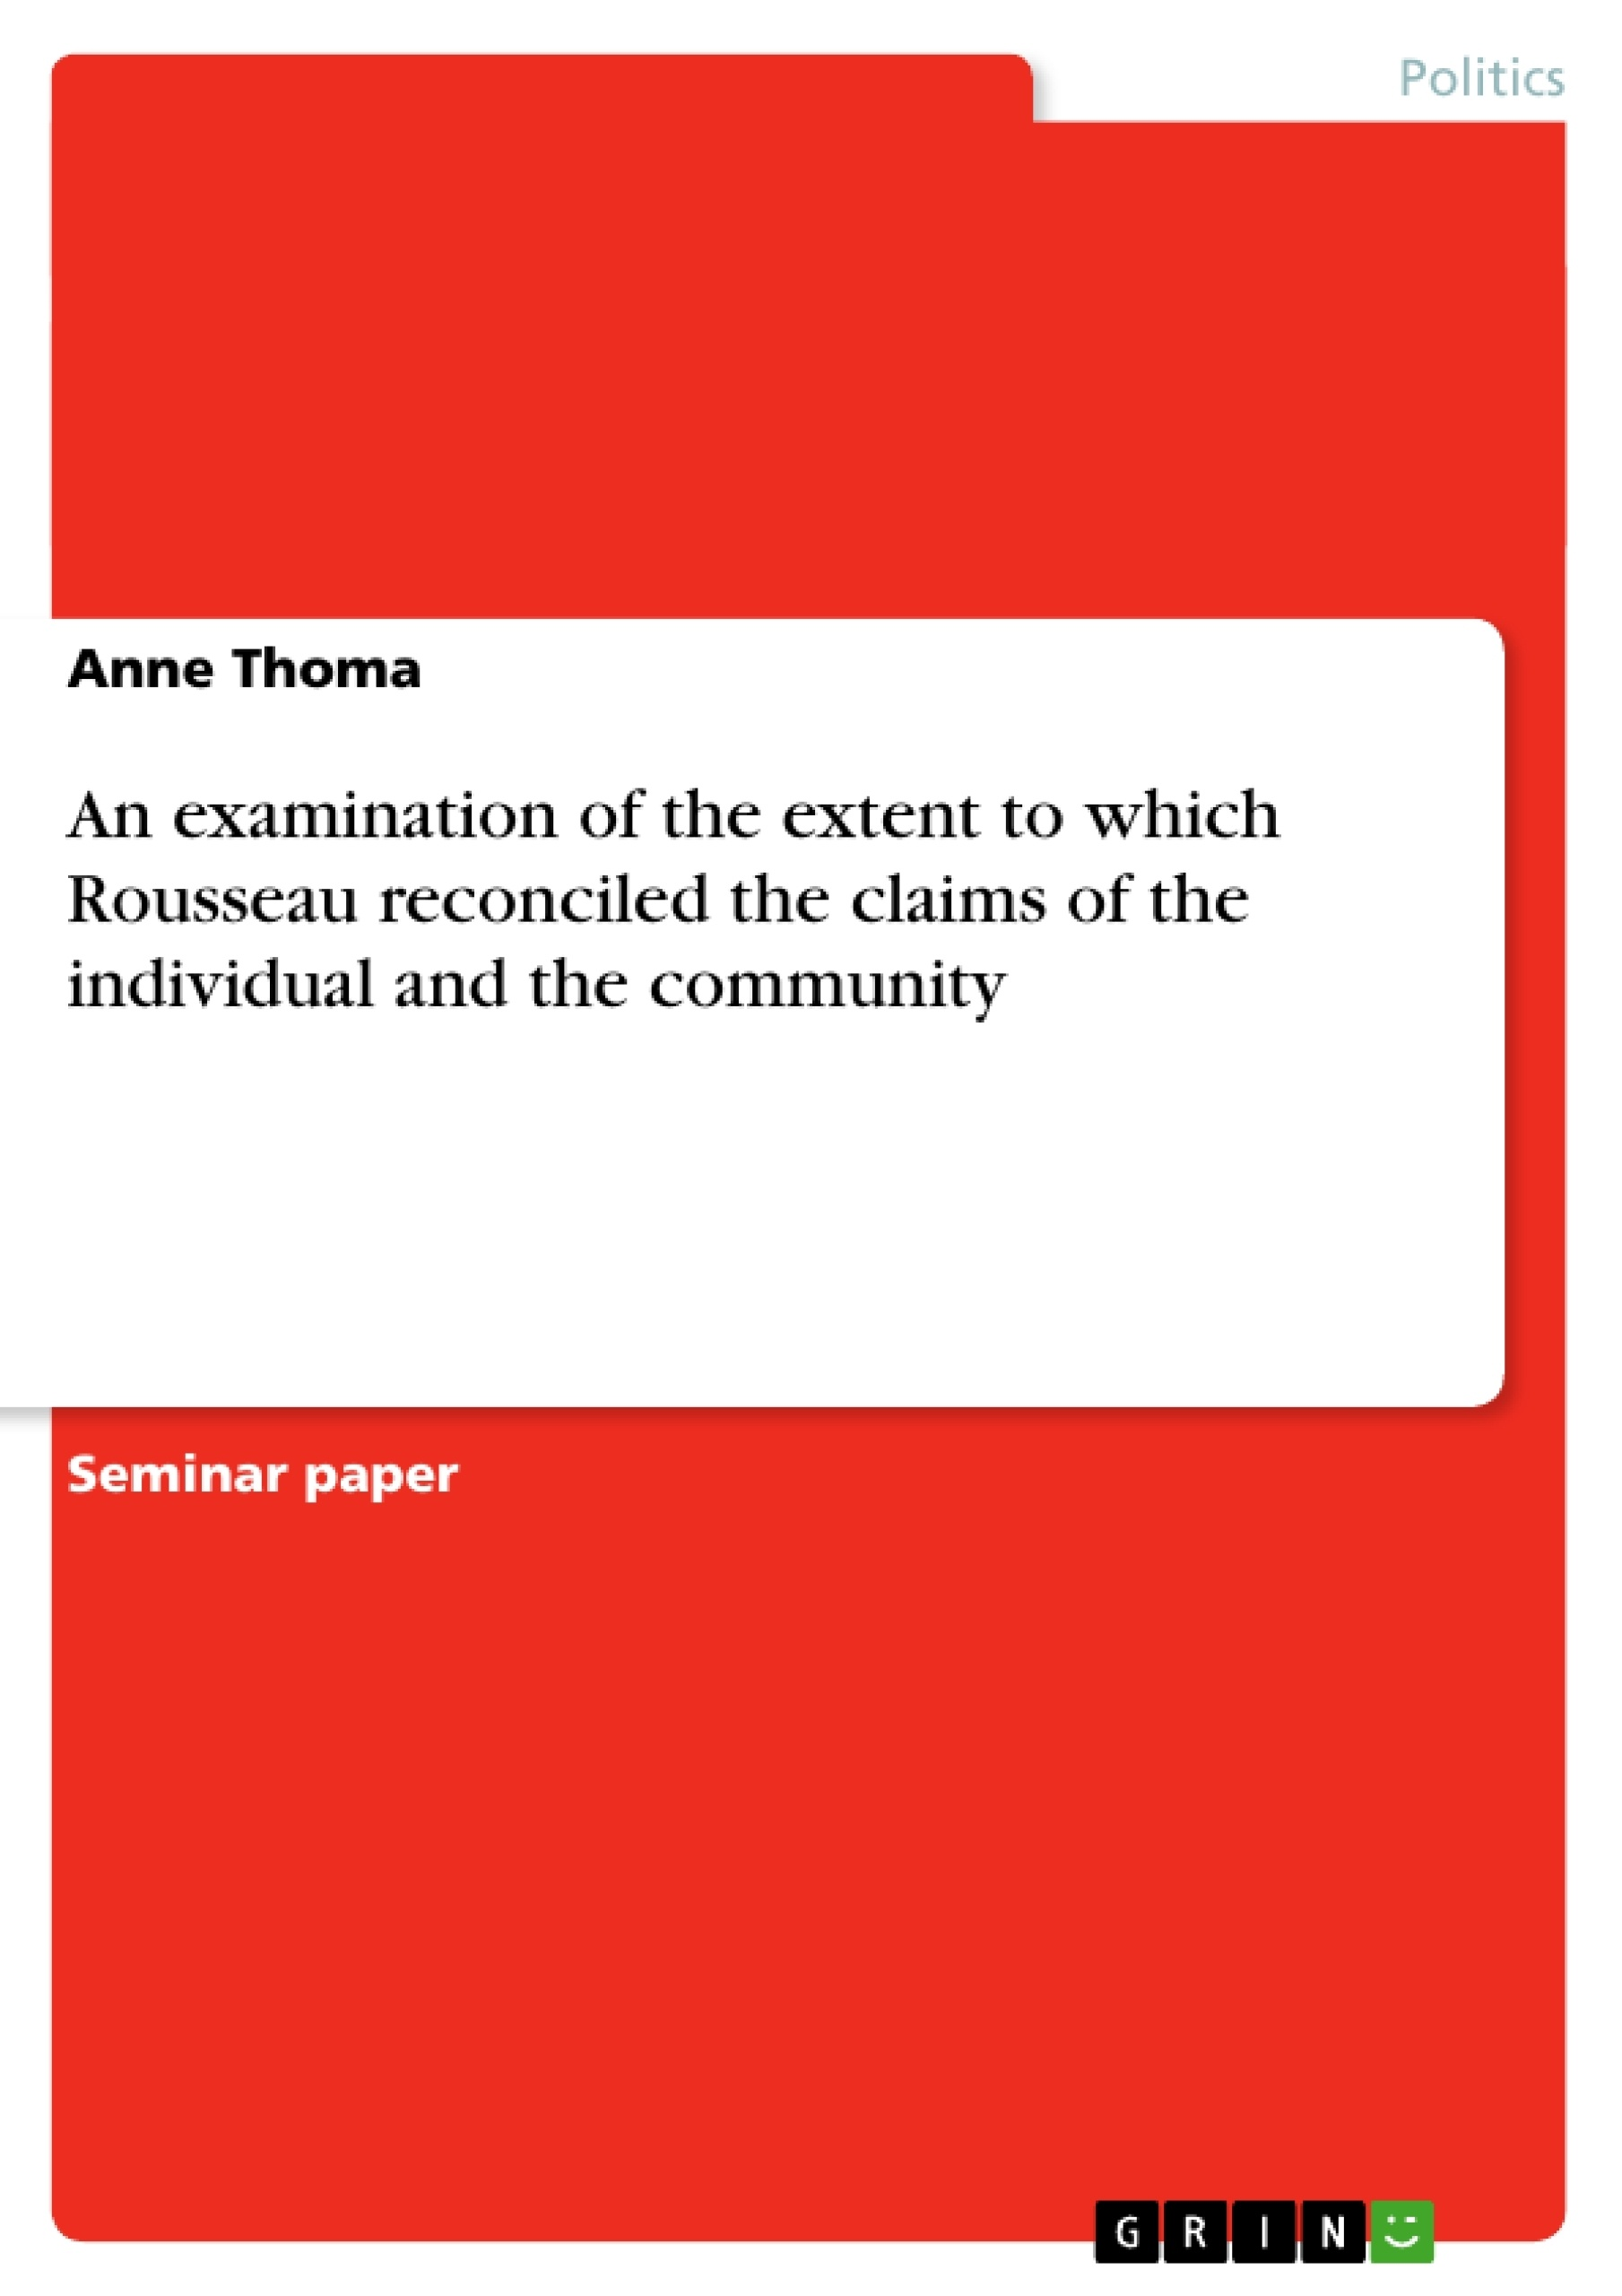 Title: An examination of the extent to which Rousseau reconciled the claims of the individual and the community